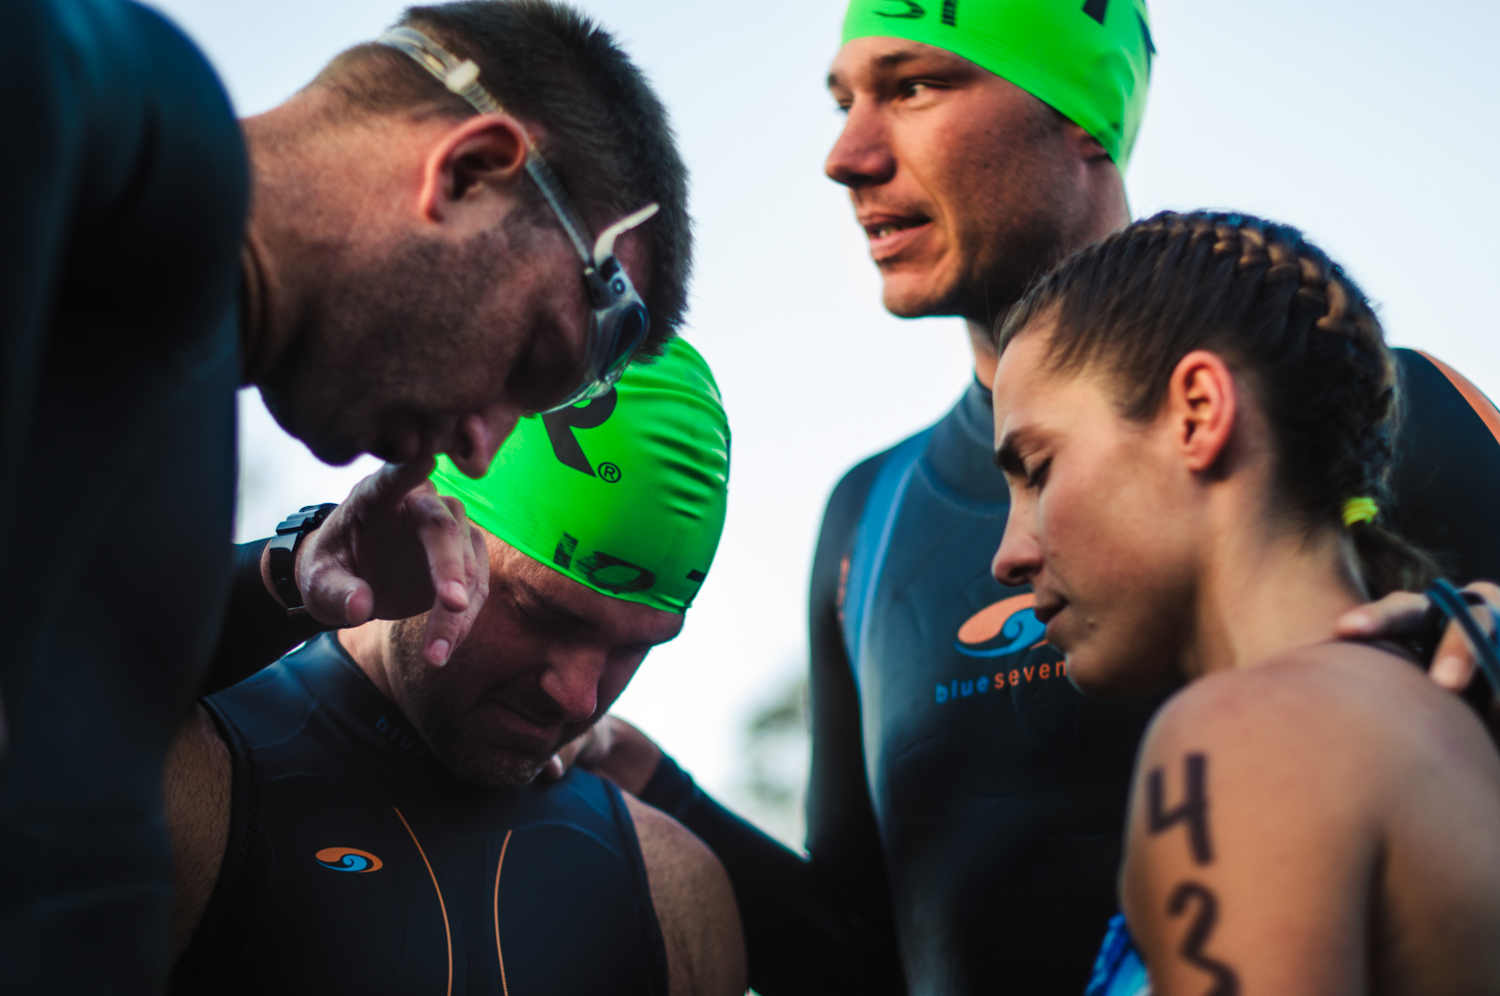 Jason's training partner Zack Mitchell (top right) led his friends in a prayer before entering the water.